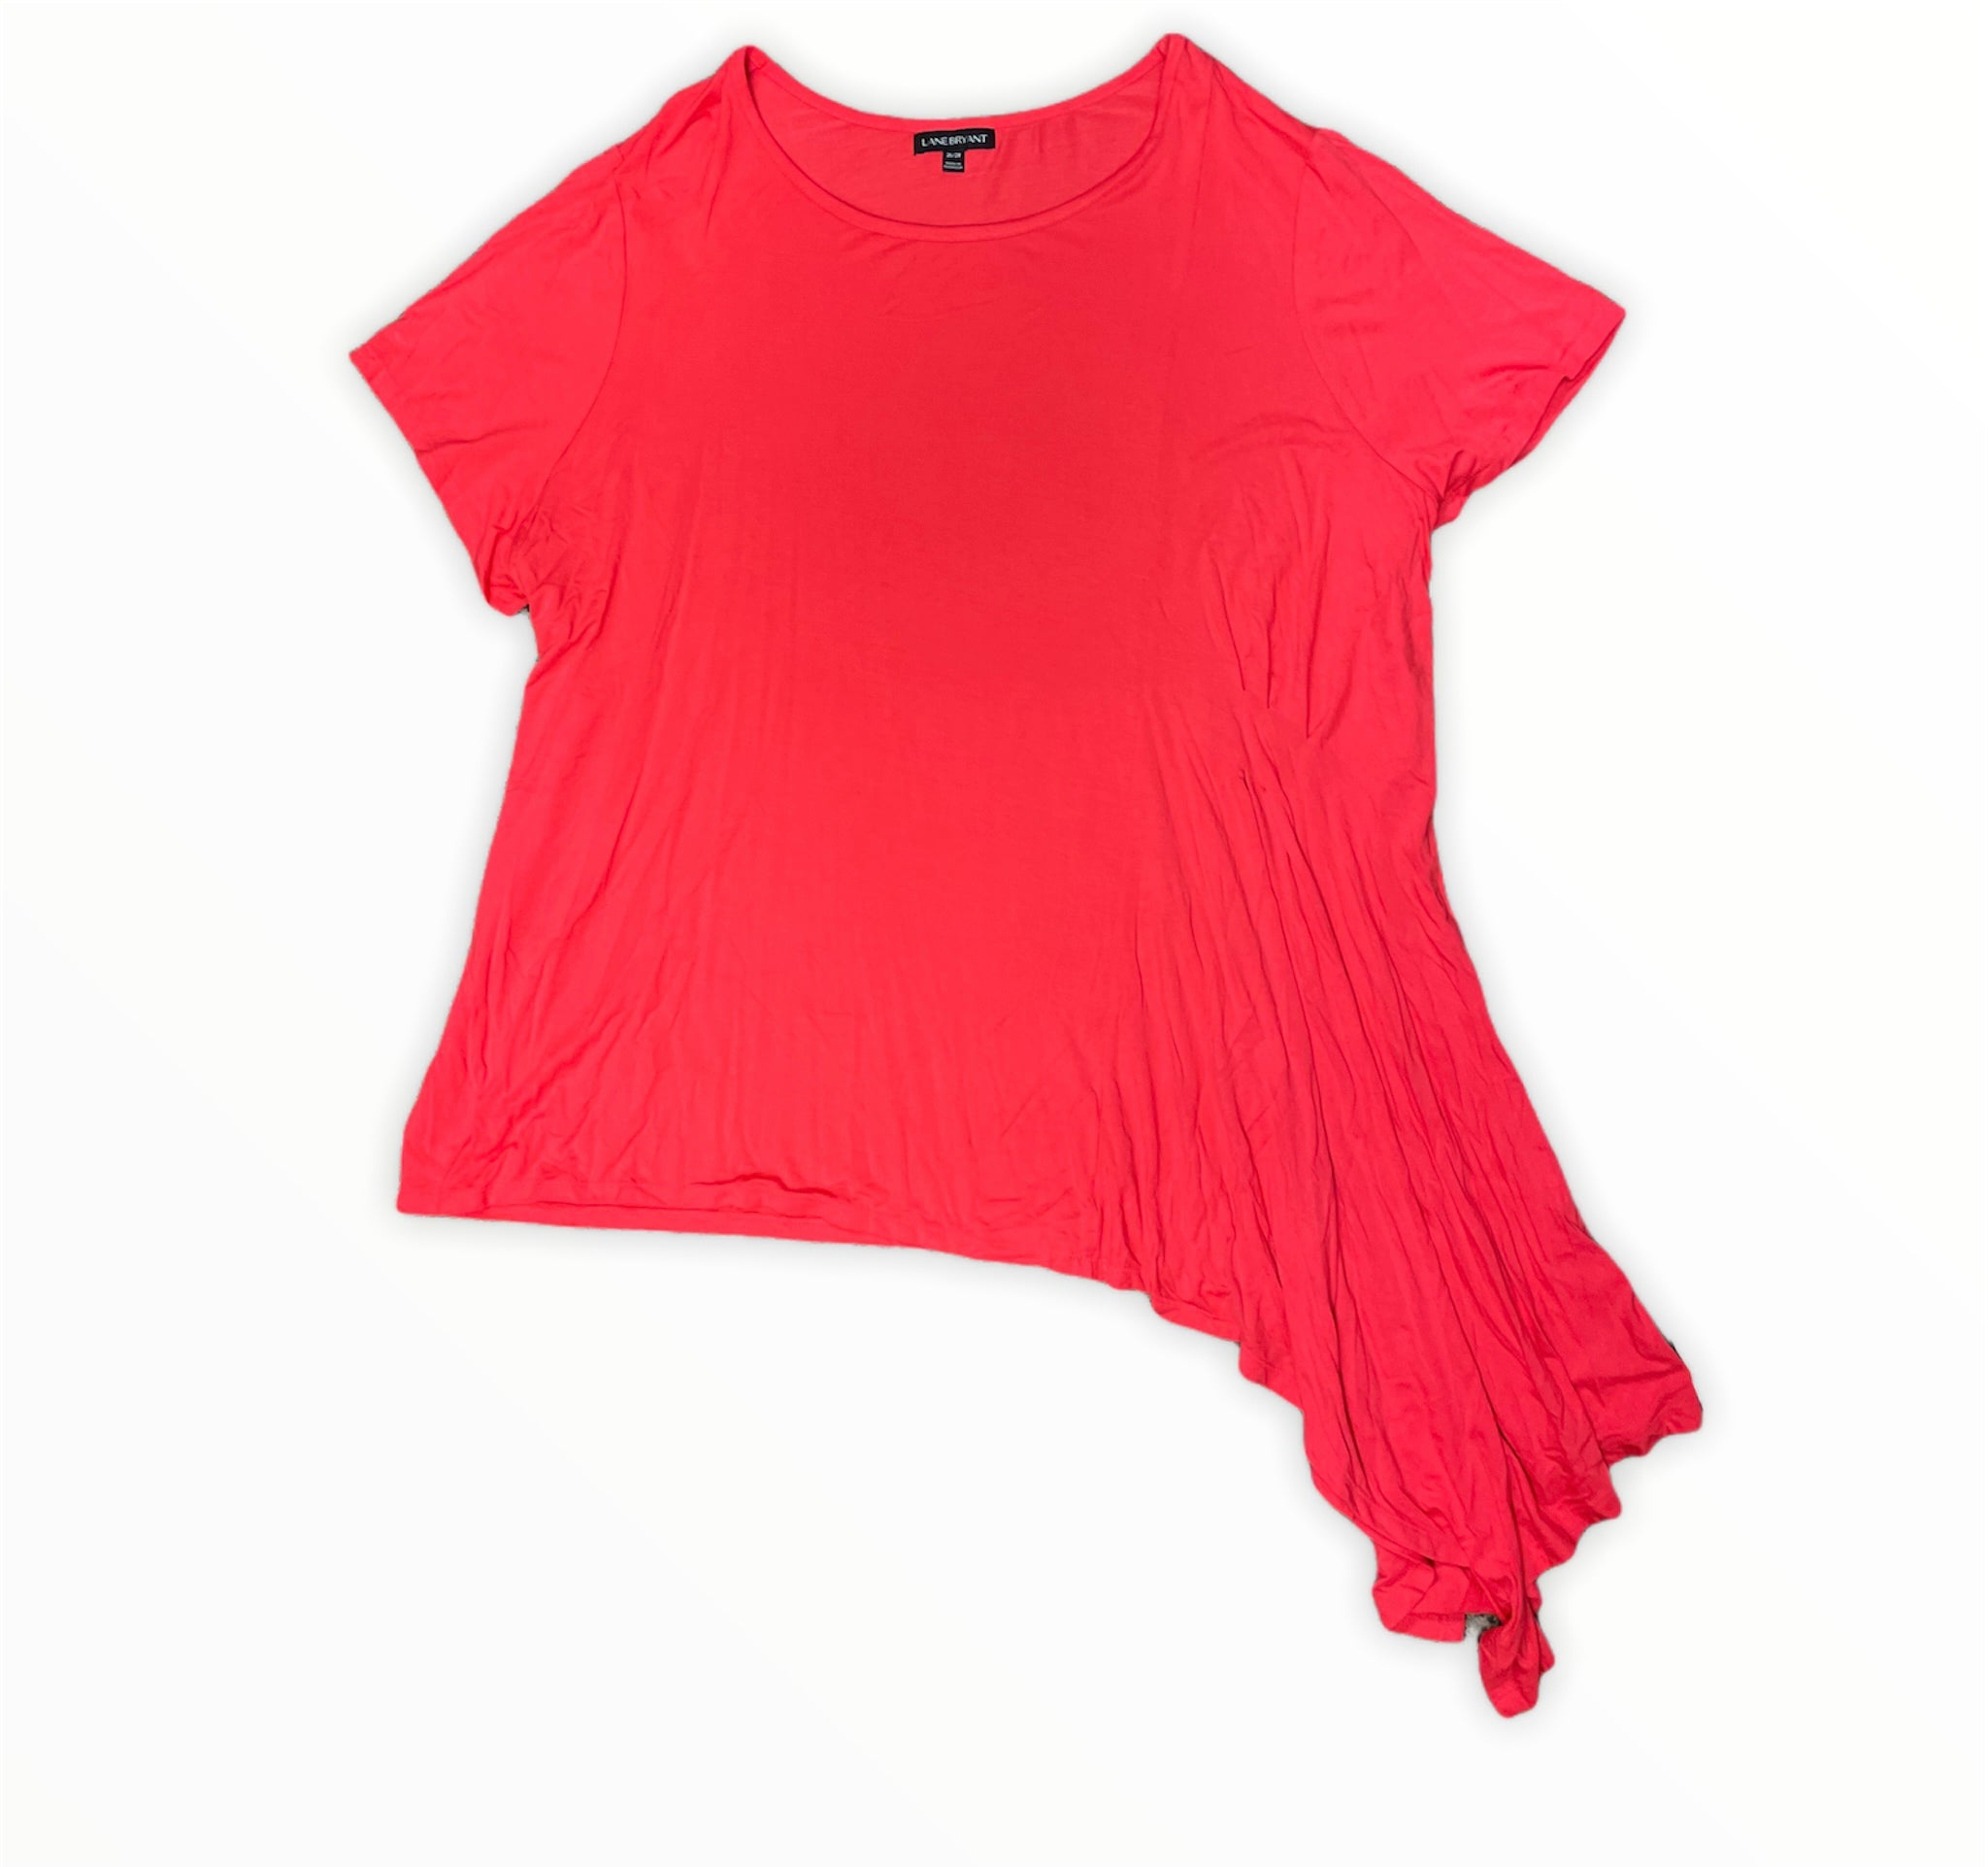 Primary Photo - BRAND: LANE BRYANT <BR>STYLE: TOP SHORT SLEEVE <BR>COLOR: RED <BR>SIZE: 4X <BR>SKU: 223-22364-41987